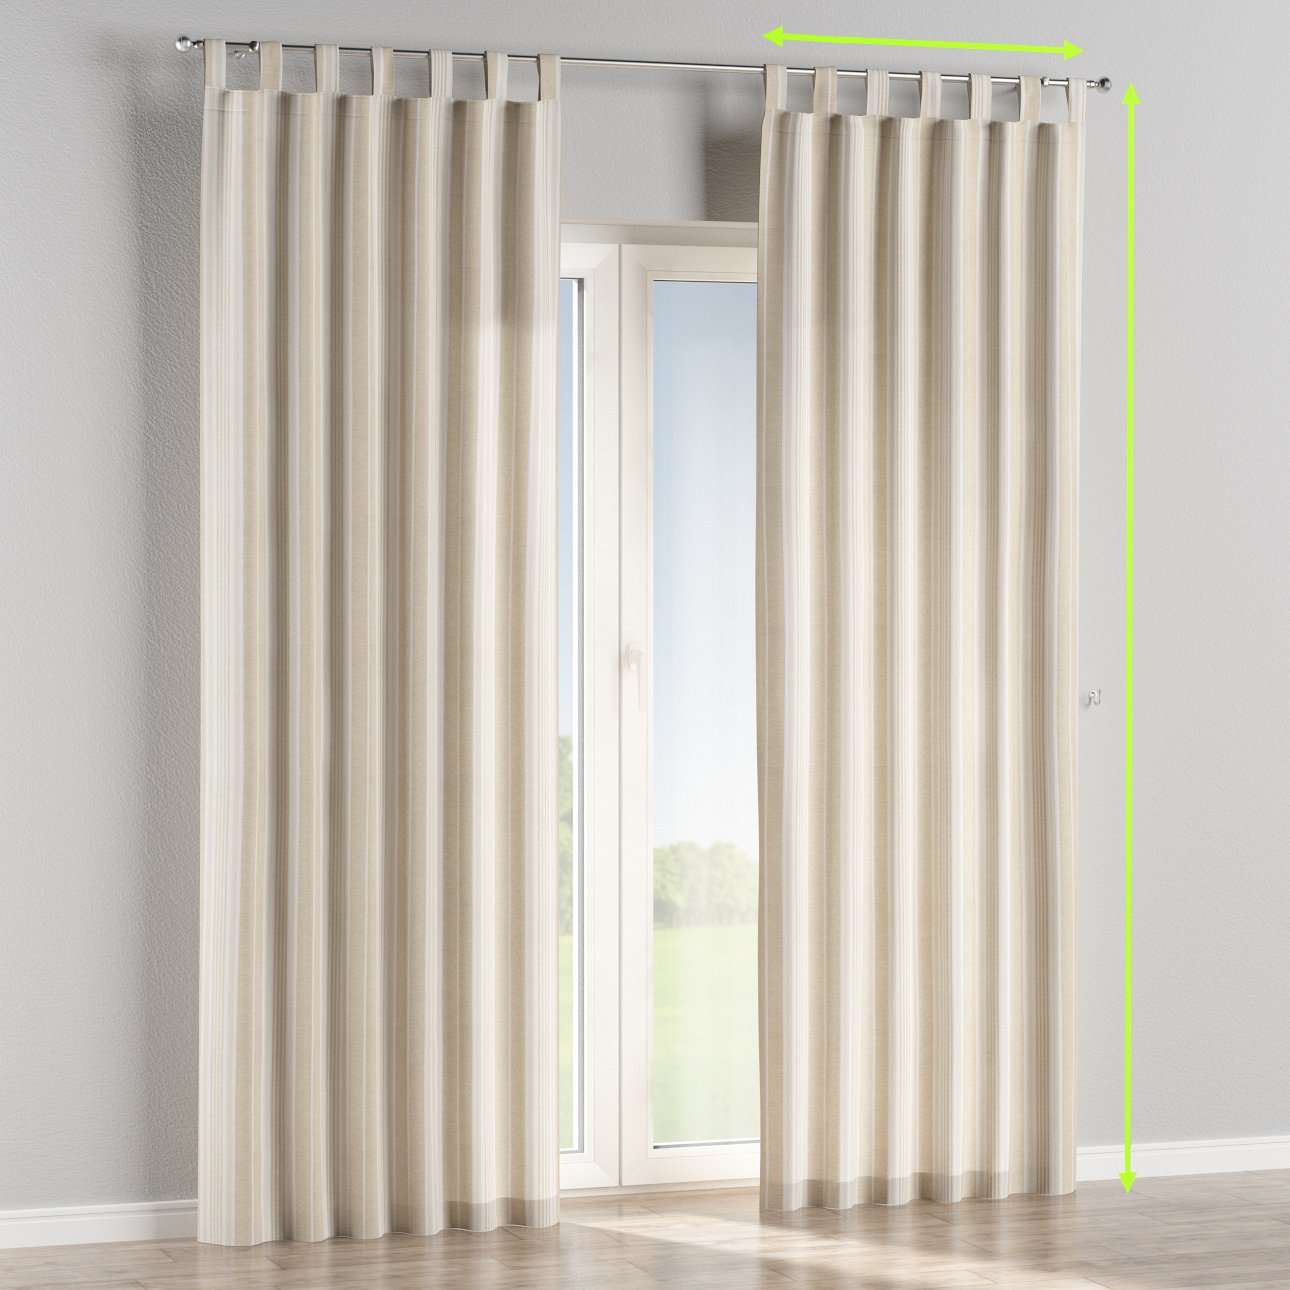 Tab top curtains in collection Rustica, fabric: 138-24